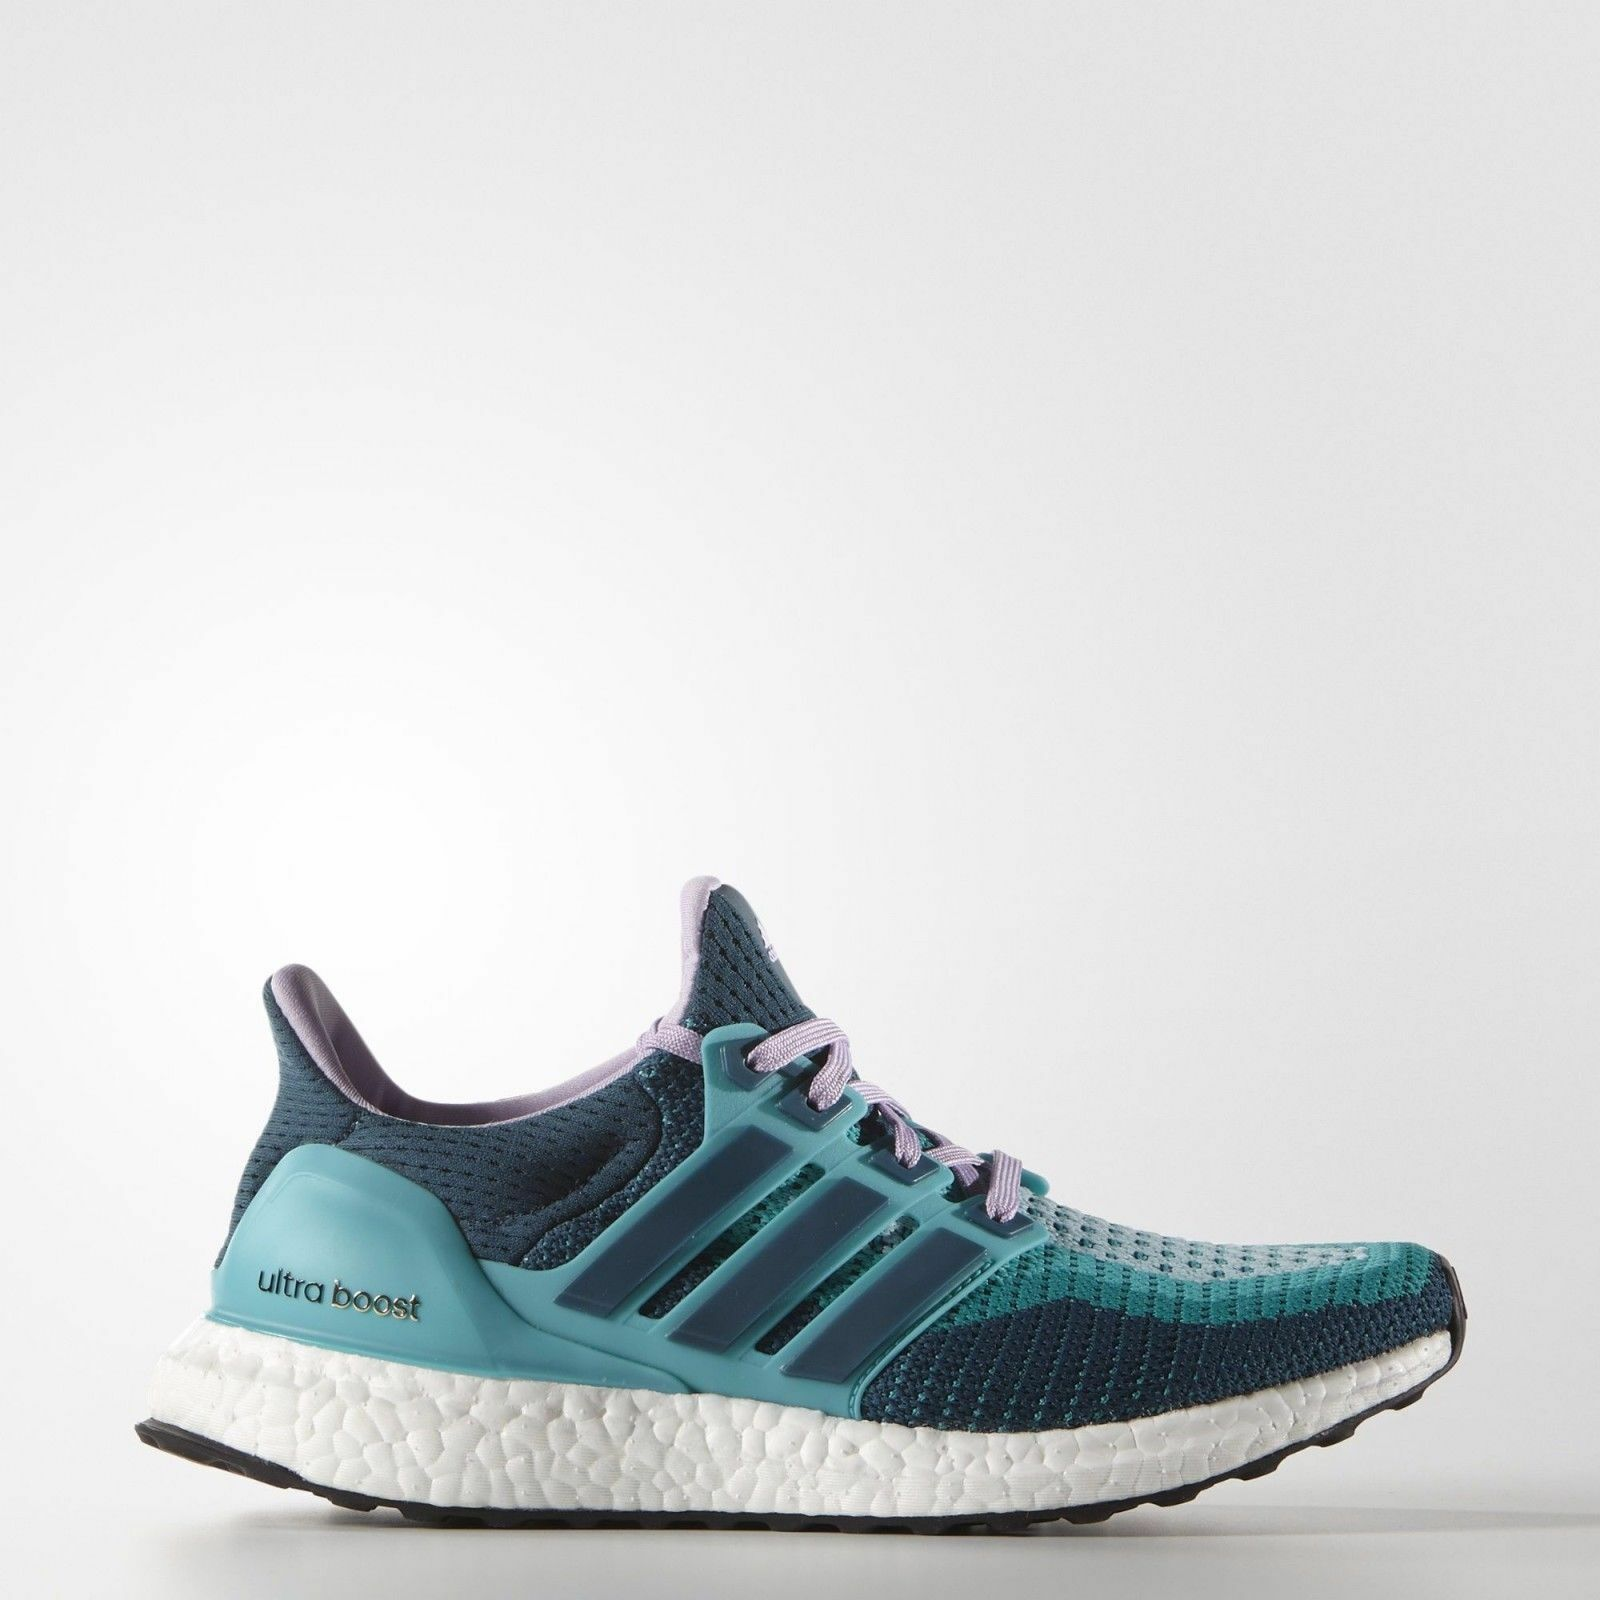 [Adidas] AF5140 Women's Running Ultra Boost shoes Green Sz  5  6  wholesale prices